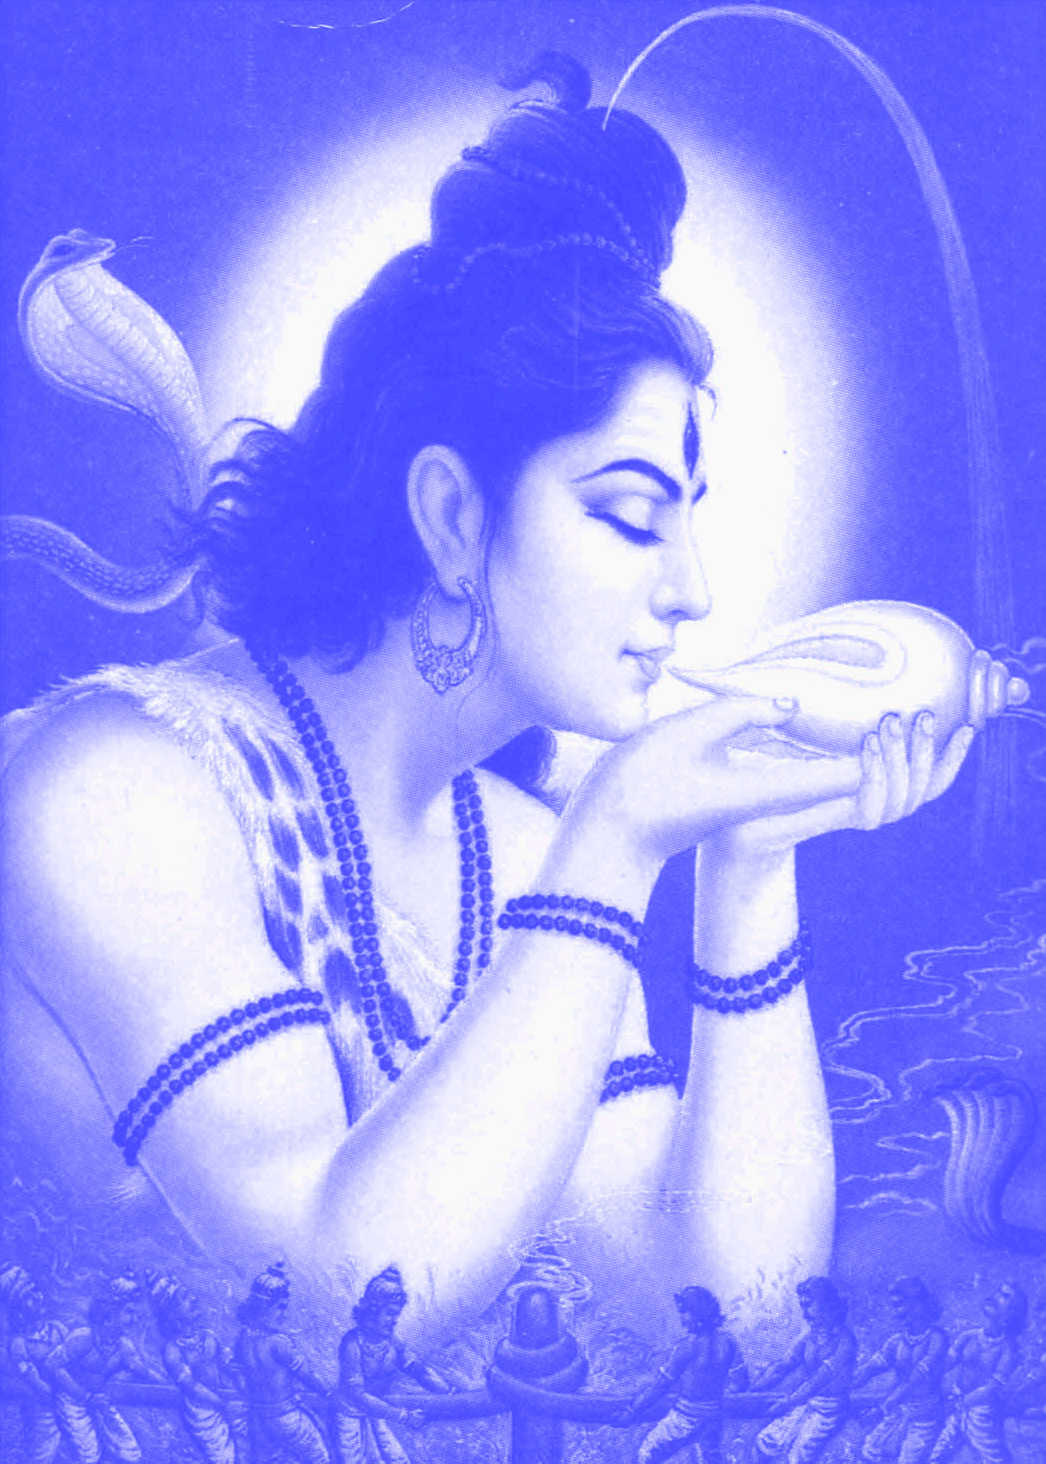 Shiva blowing into his conch shell